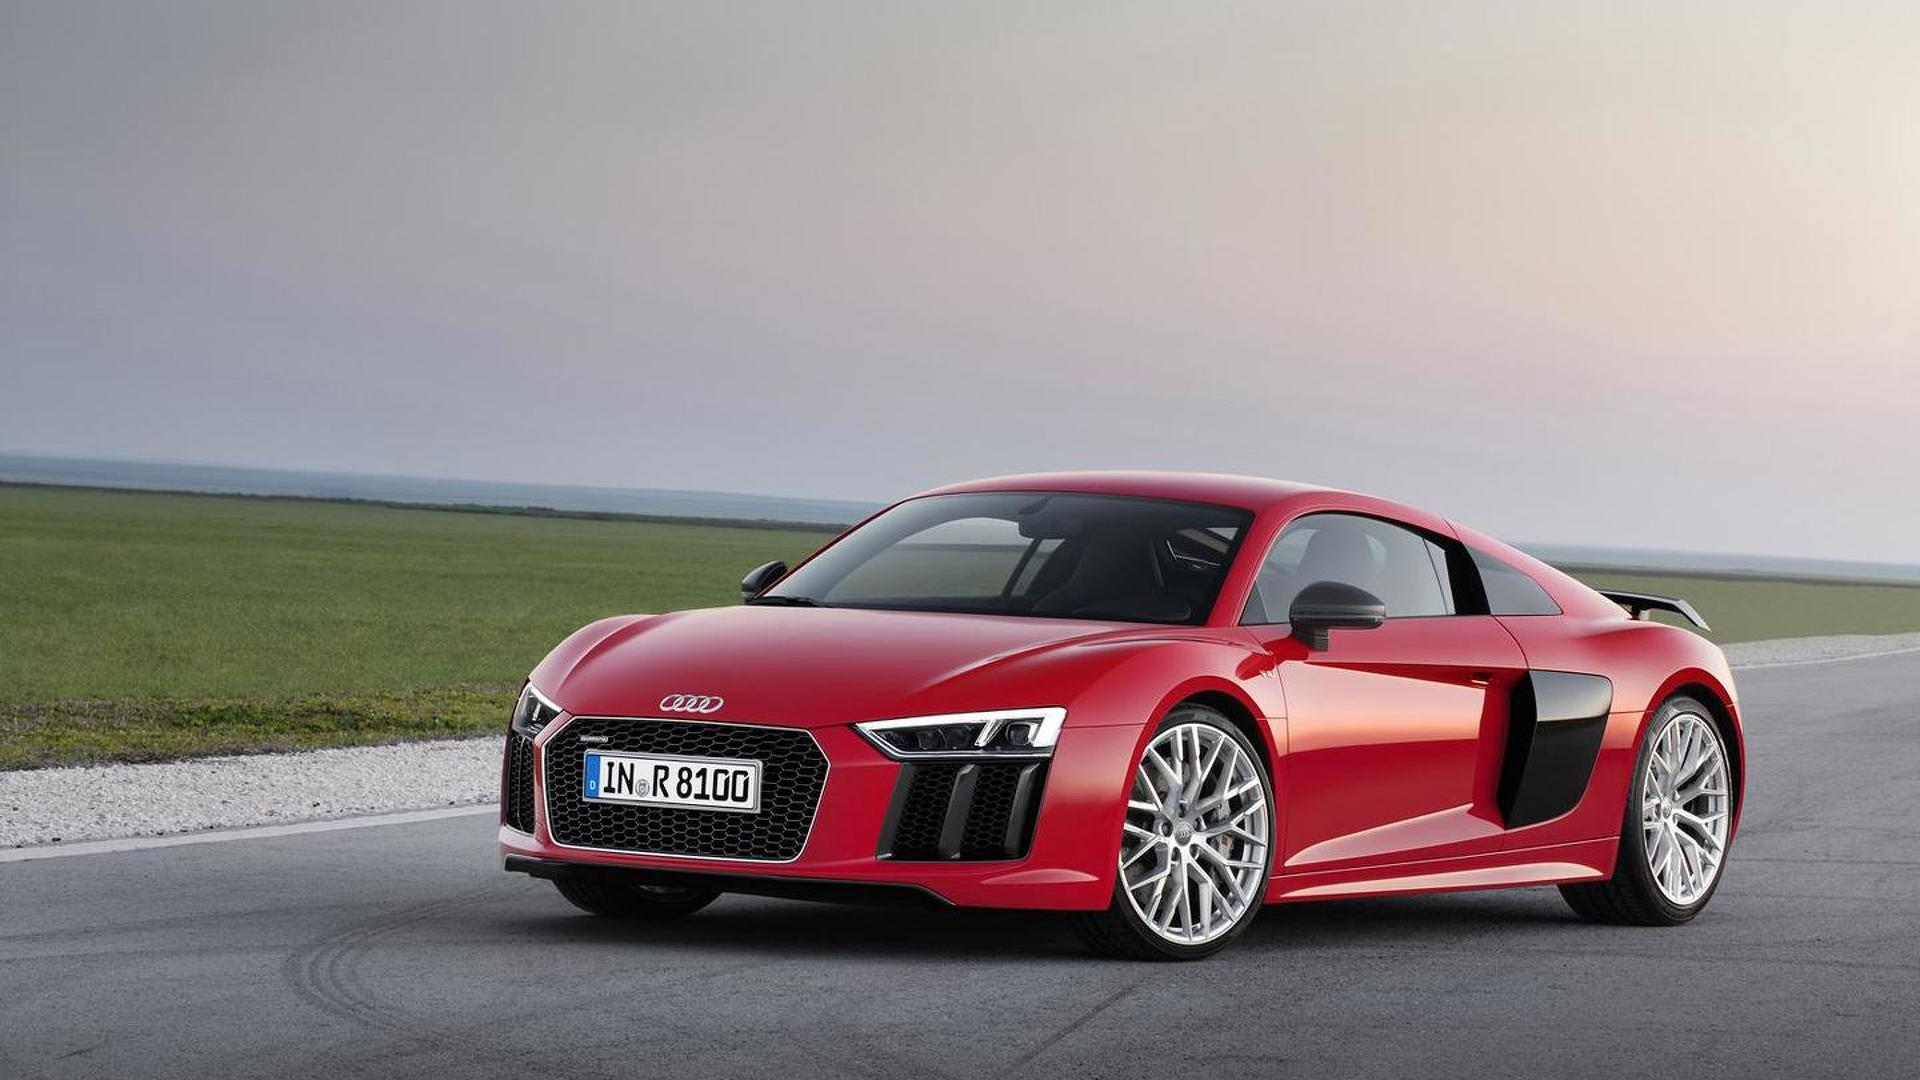 Lamborghini Huracan and Audi R8 could get 5-cylinder turbo engine